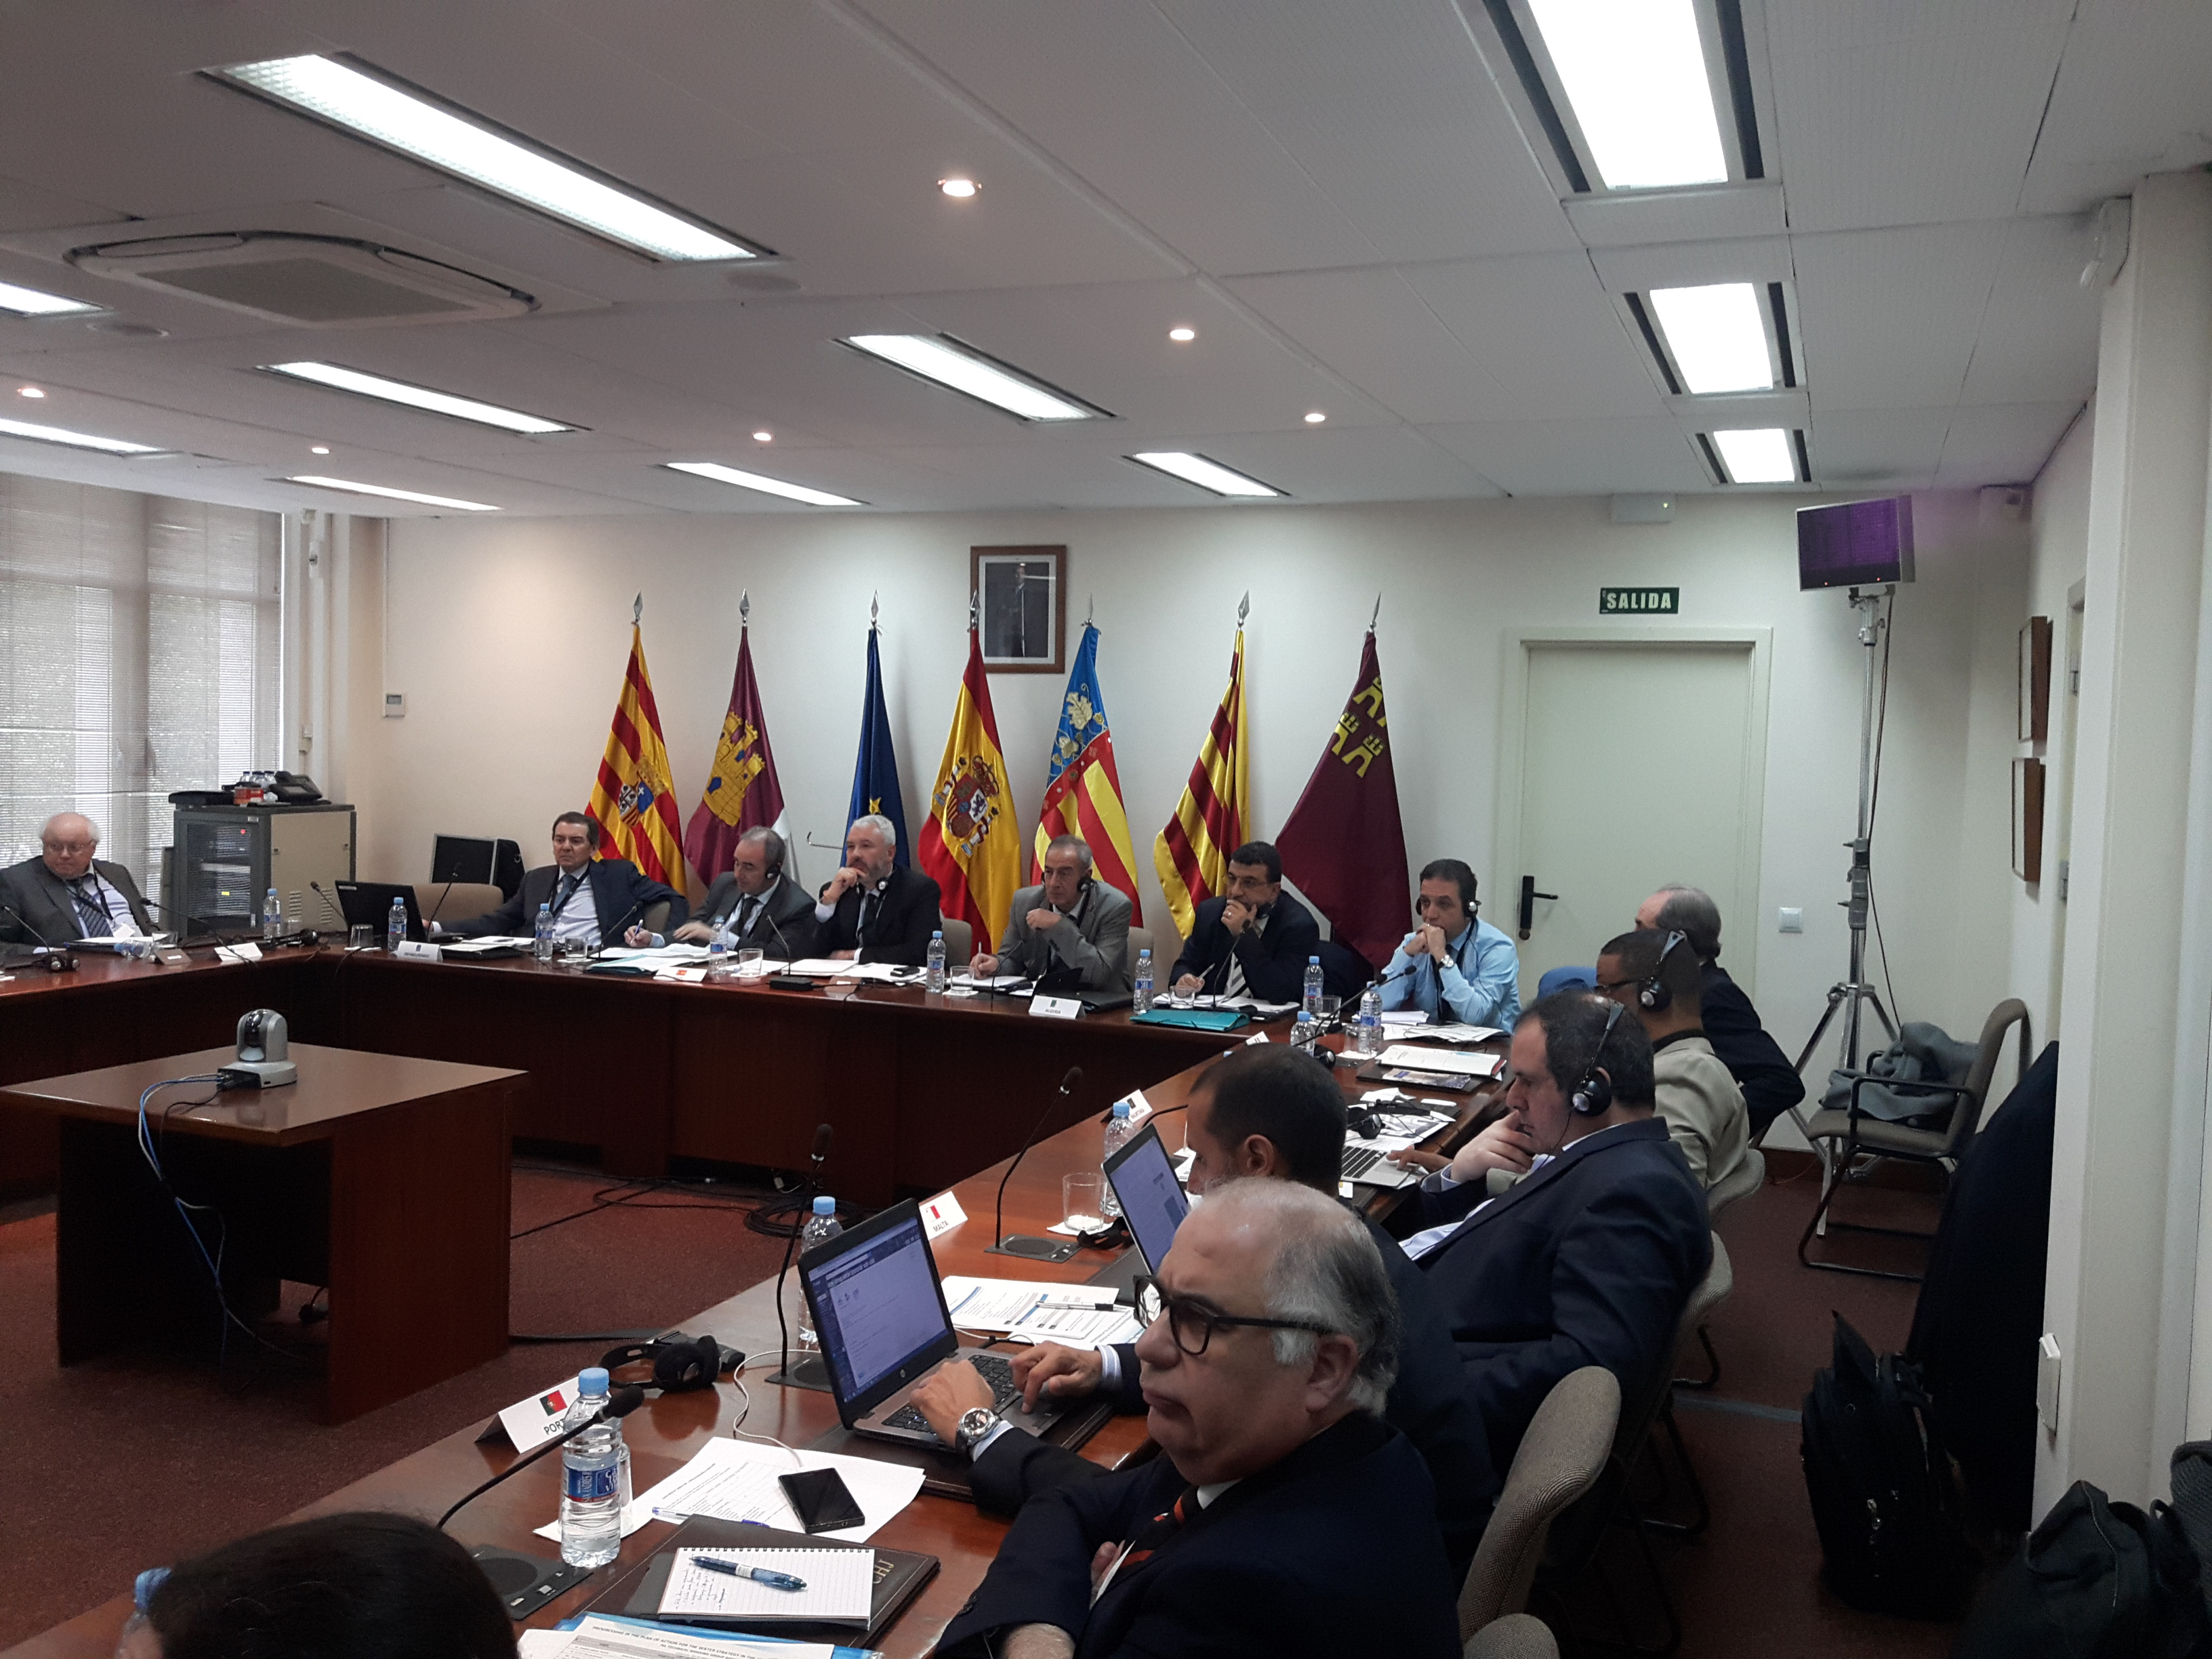 30-31 March 2017, Valencia, Spain – Action Plan of the Water Strategy in the Western Mediterranean (5+5)-7th Technical Working Group Meeting